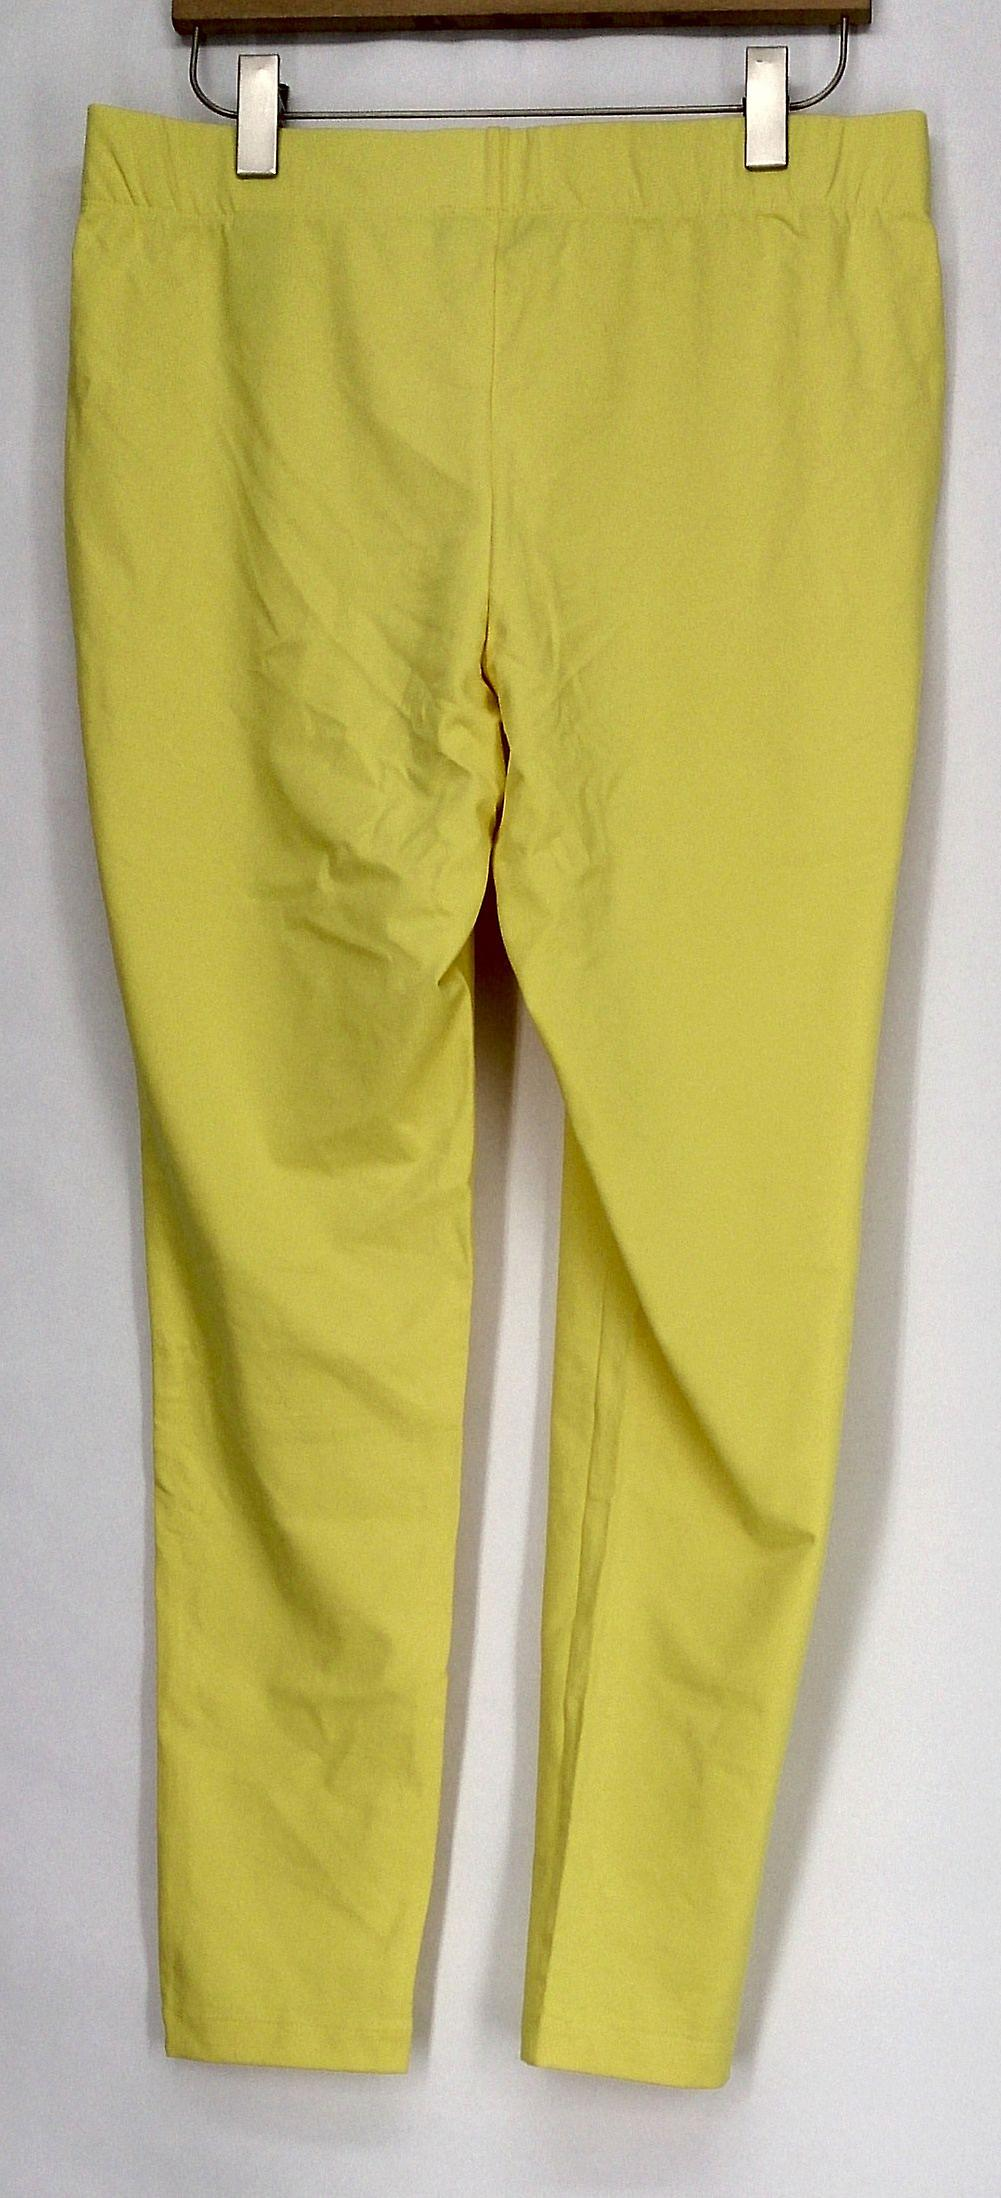 Options amincissante pour Kate et Mallory Leggings Shaping Cropped Yellow A408576 bfS0yt